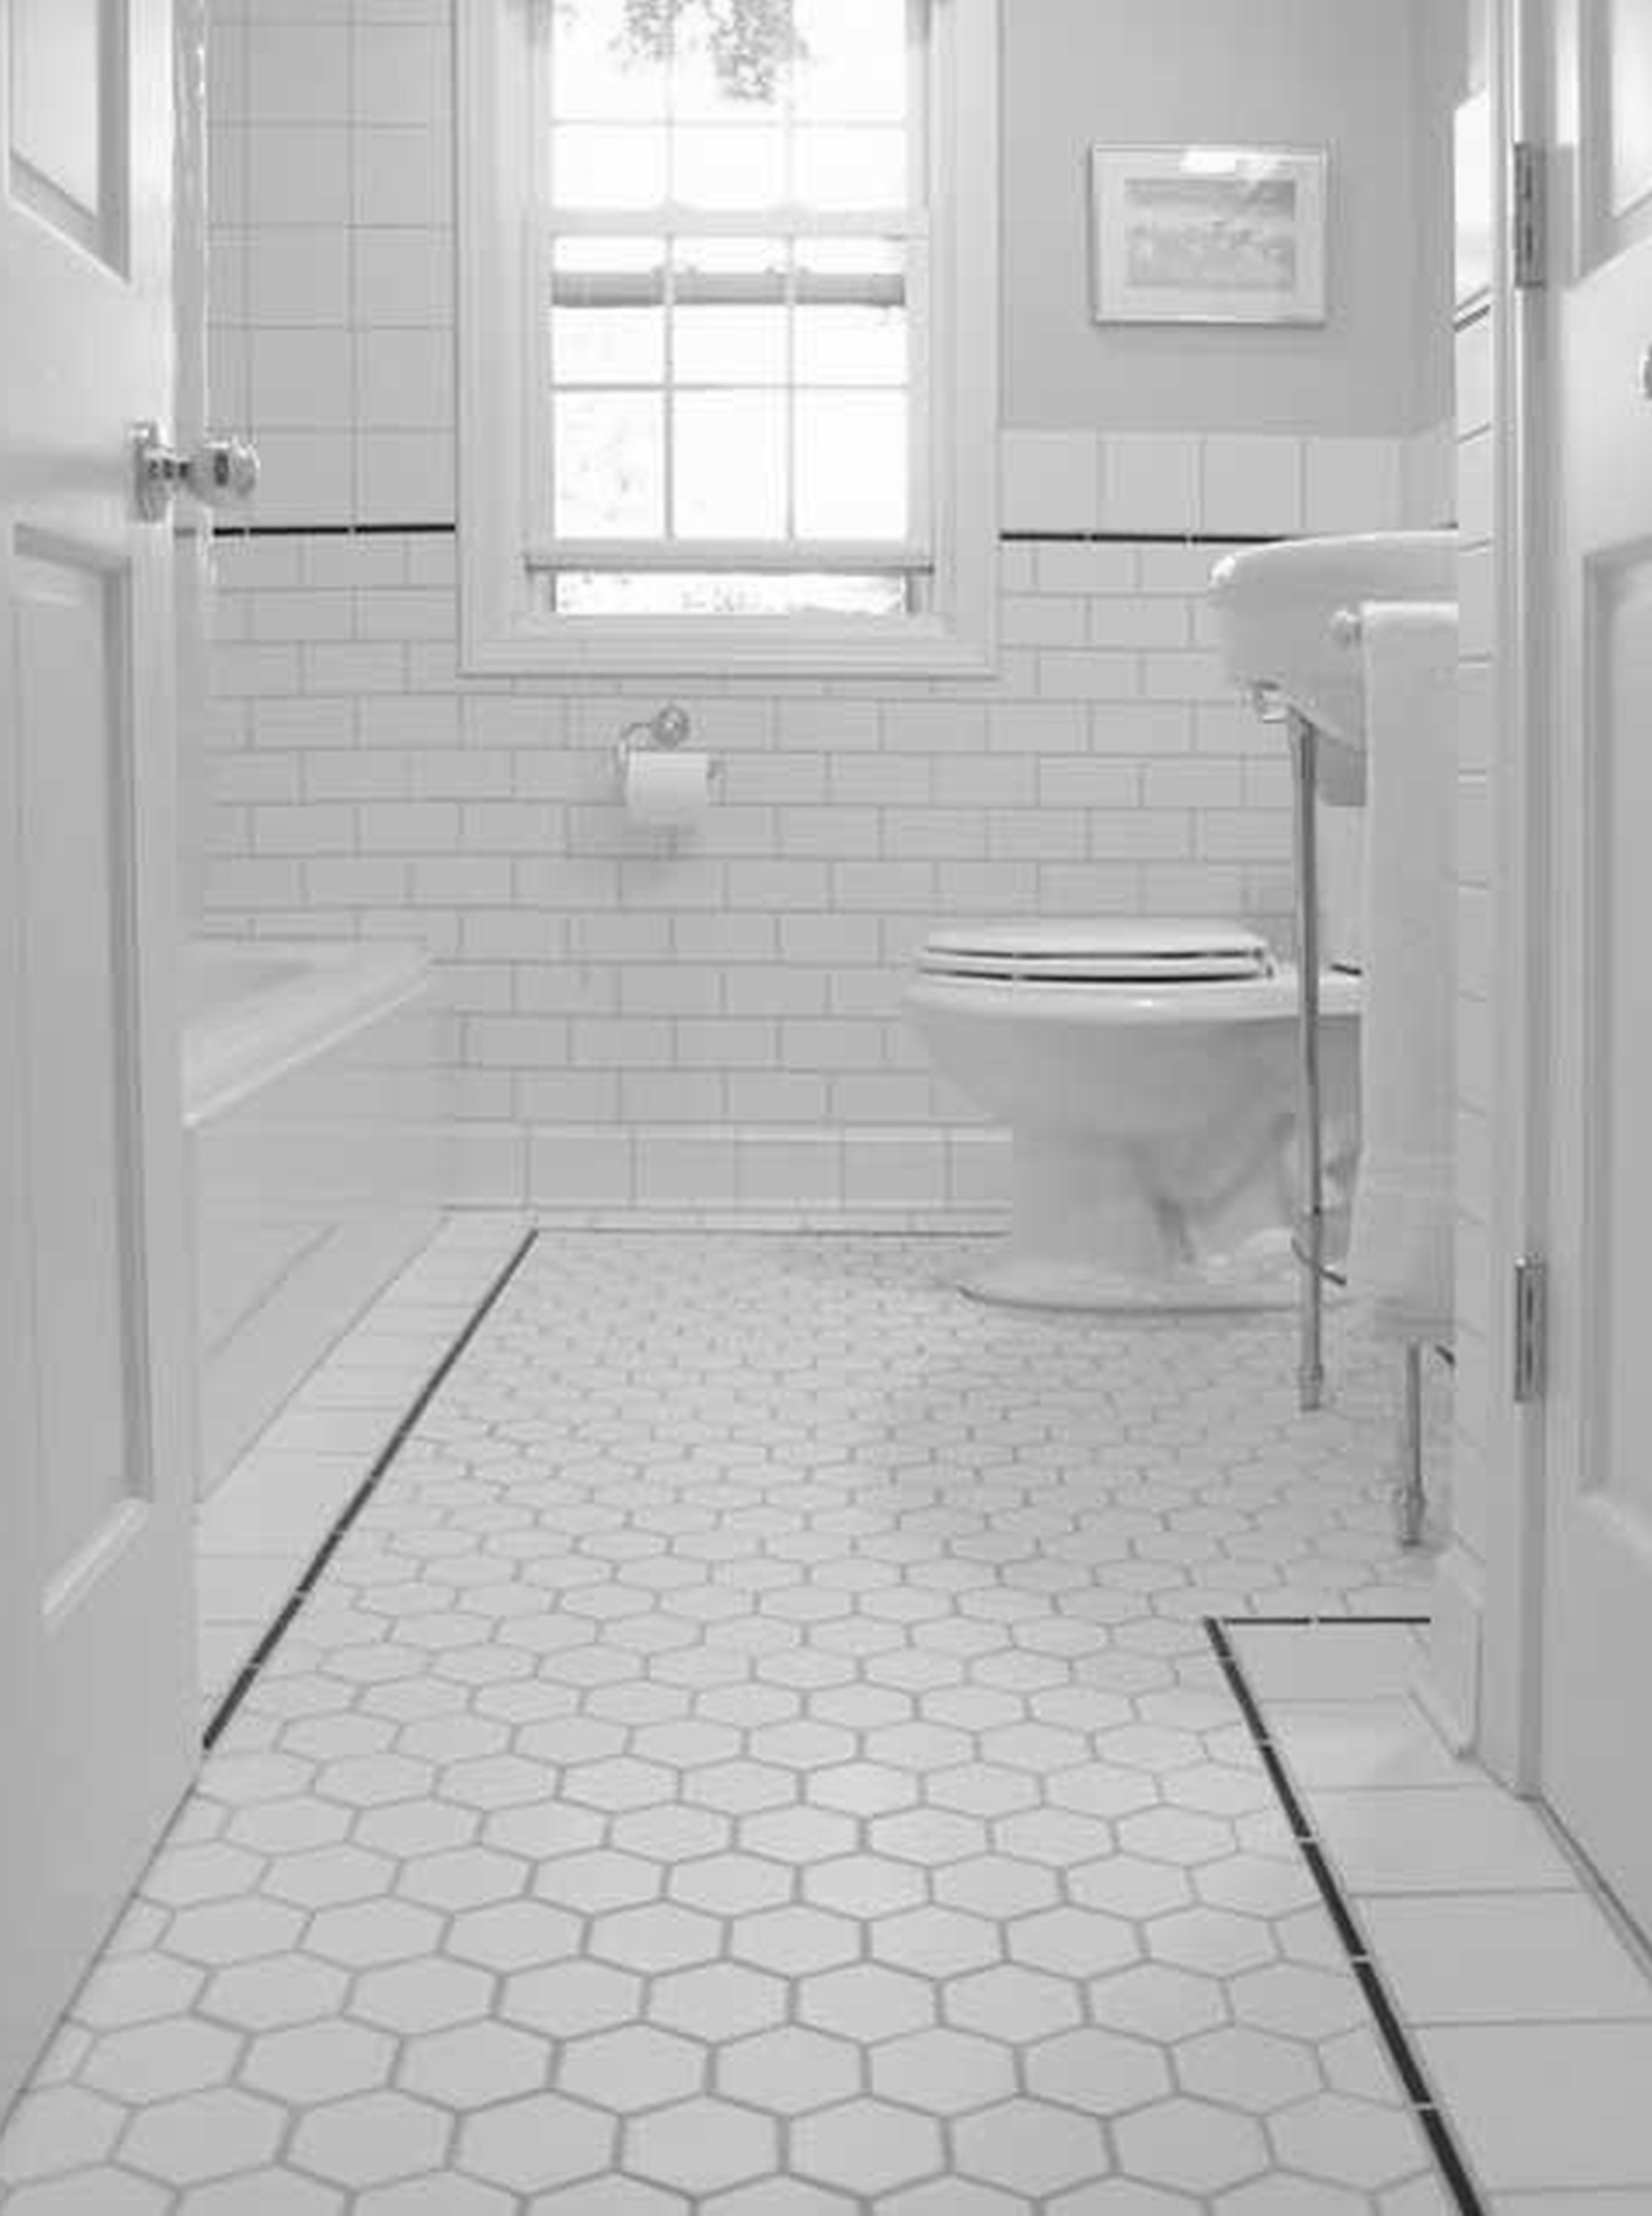 10 Wonderful Tile Flooring Ideas For Bathroom 20 functional cool bathroom tile ideas bathroom tile ideas 2021